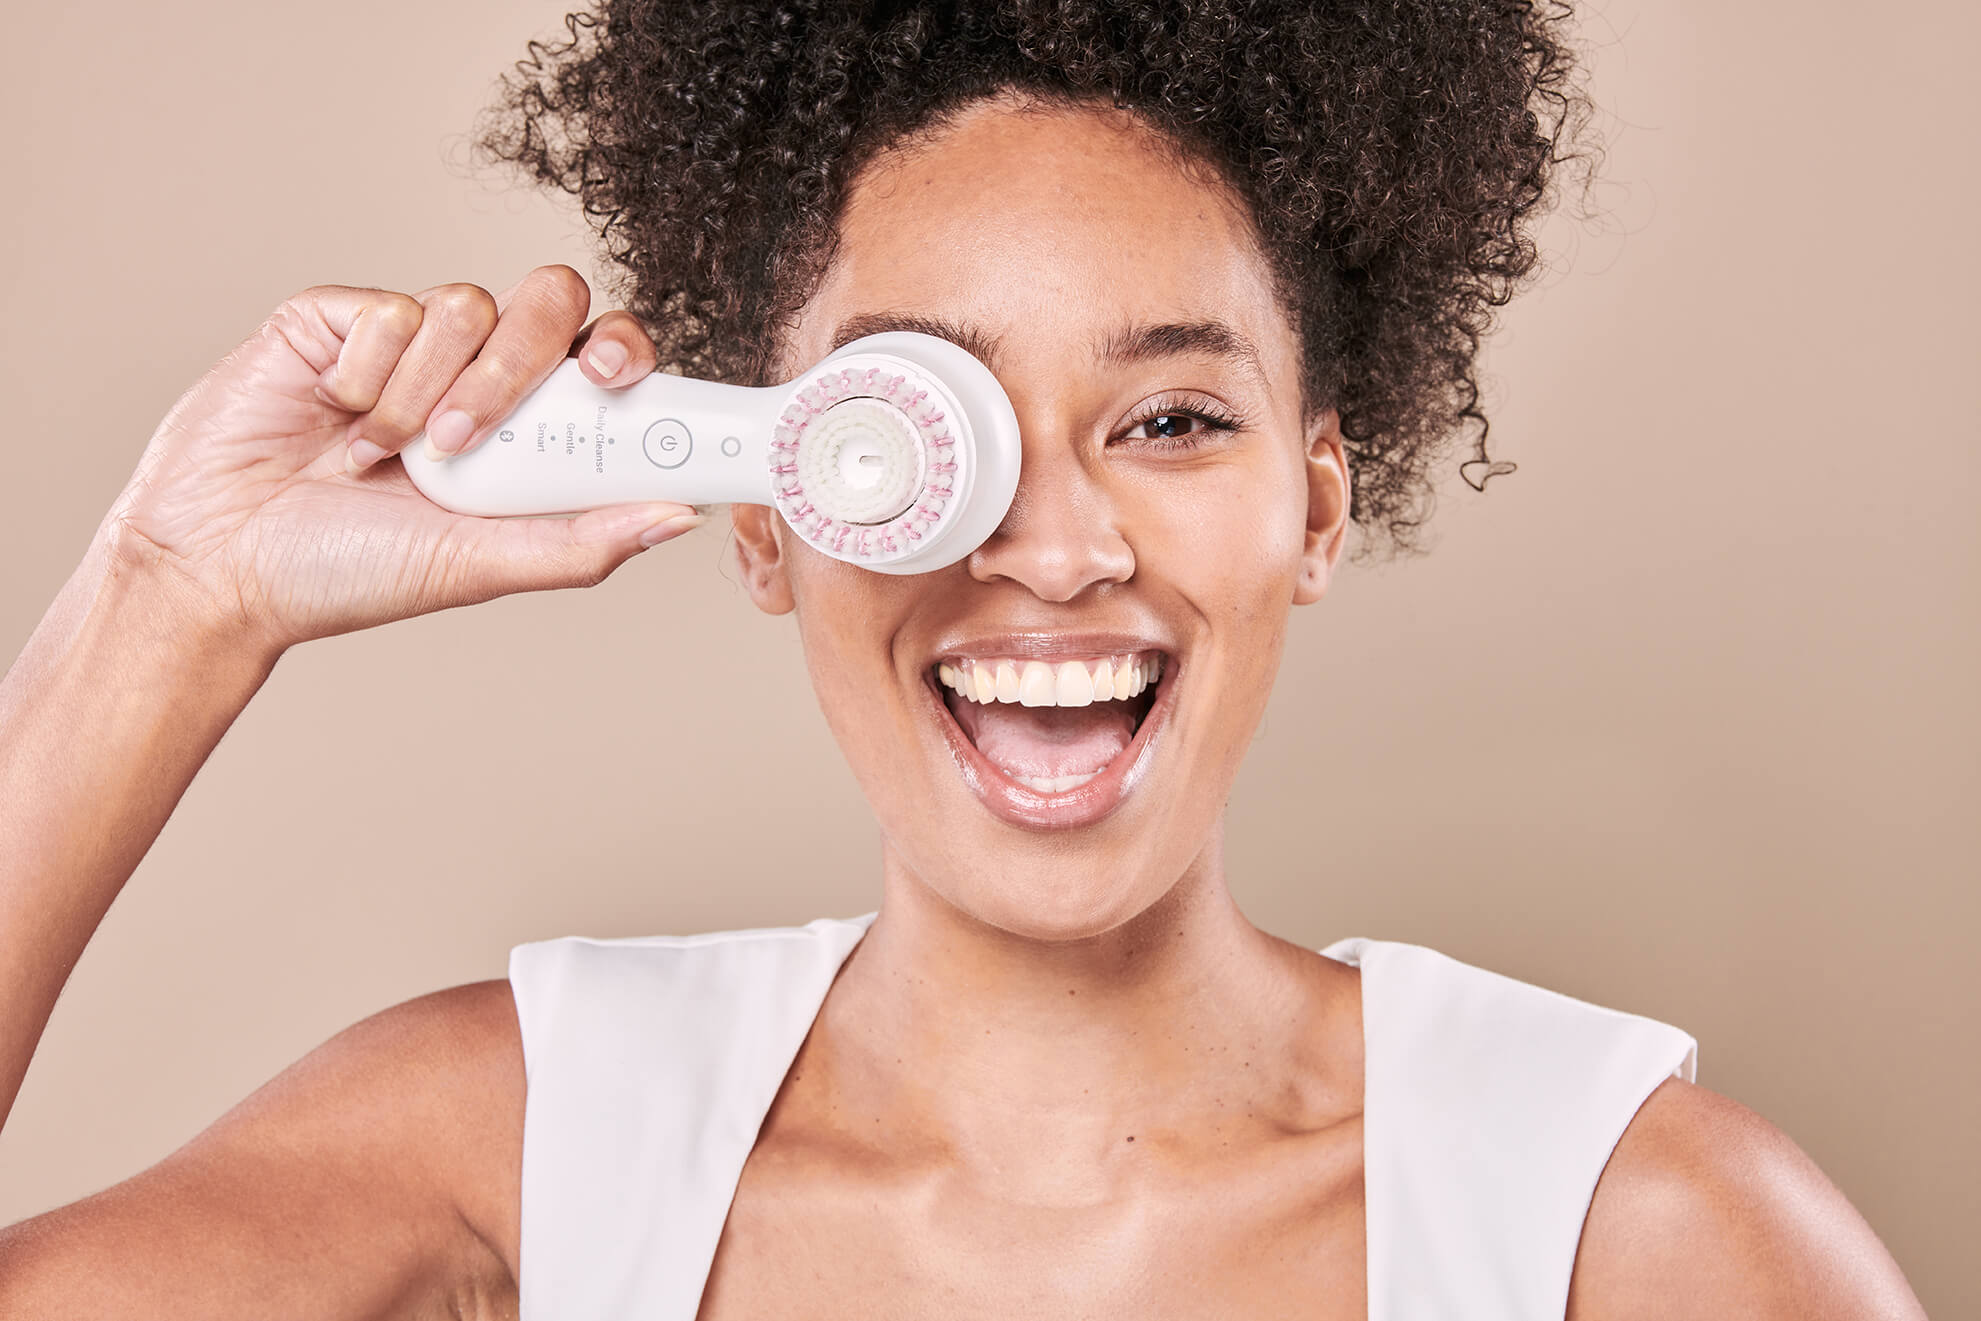 CurrentBody is globally exclusive on all Clarisonic products